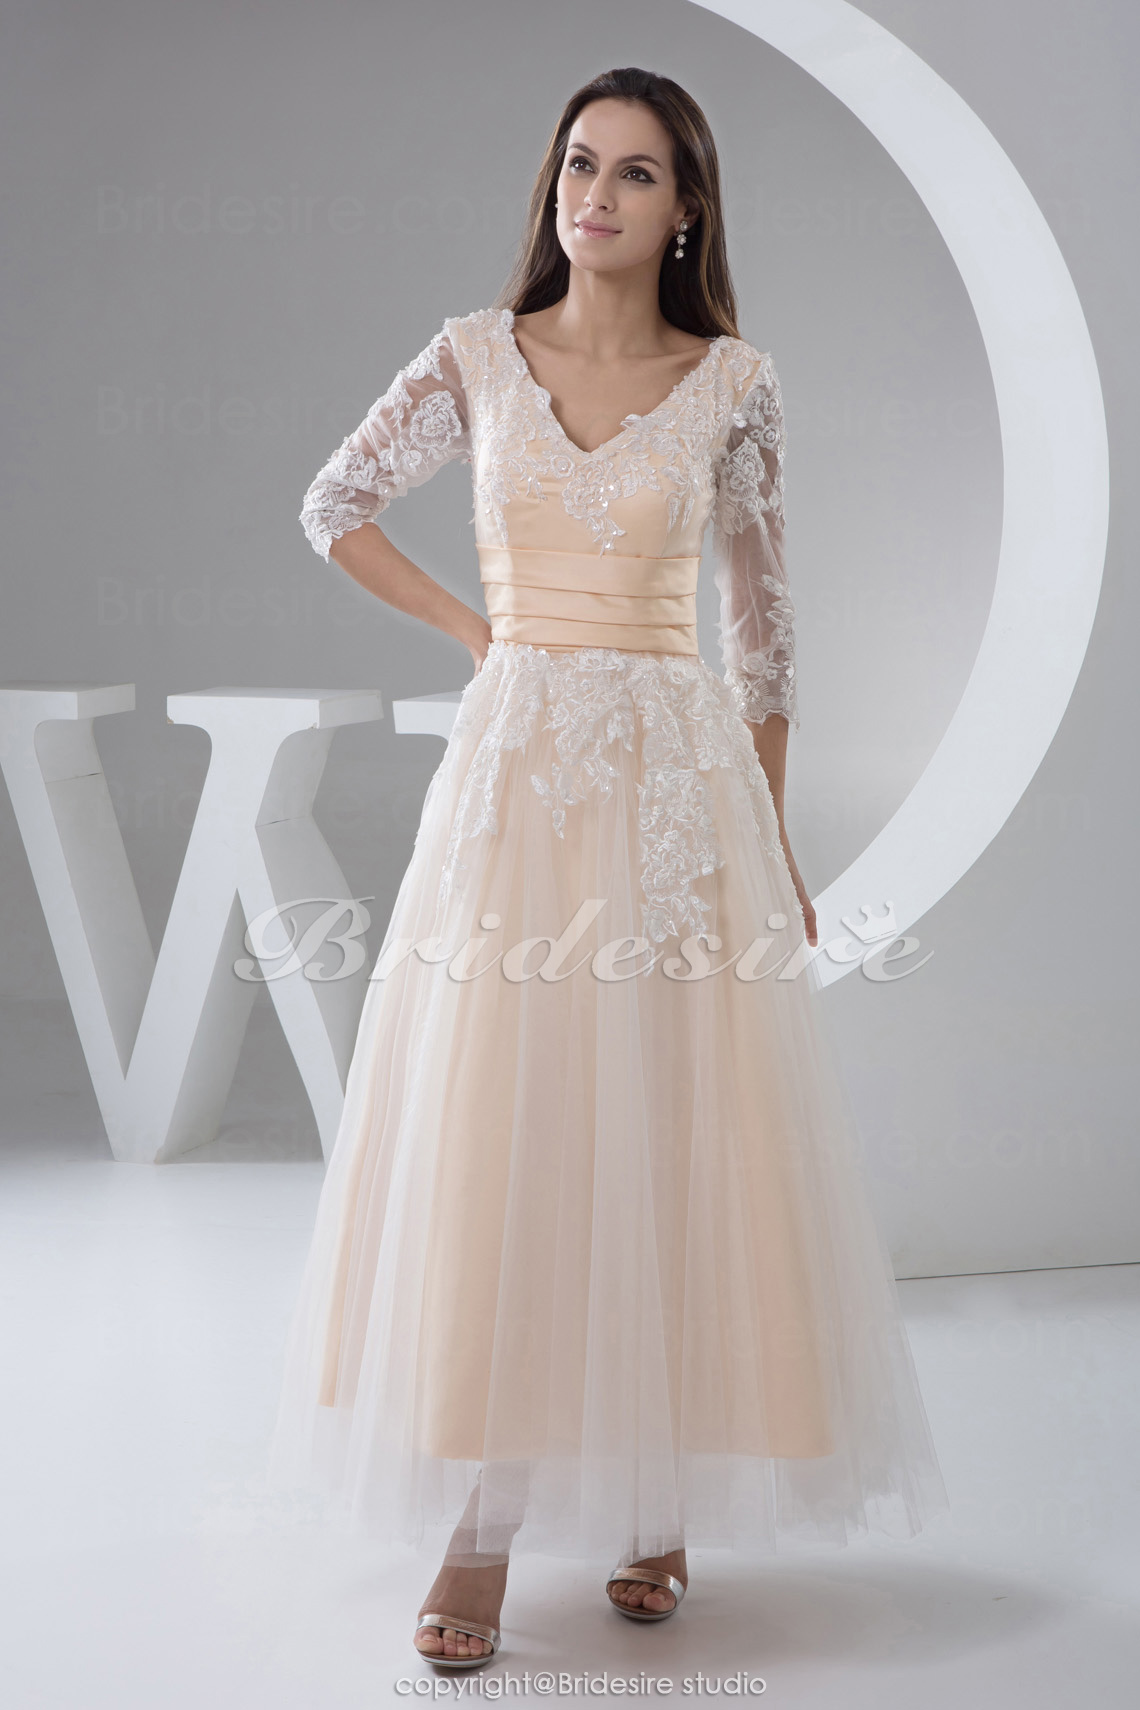 Princess V-neck Tea-length Sleeveless Tulle Taffeta Dress